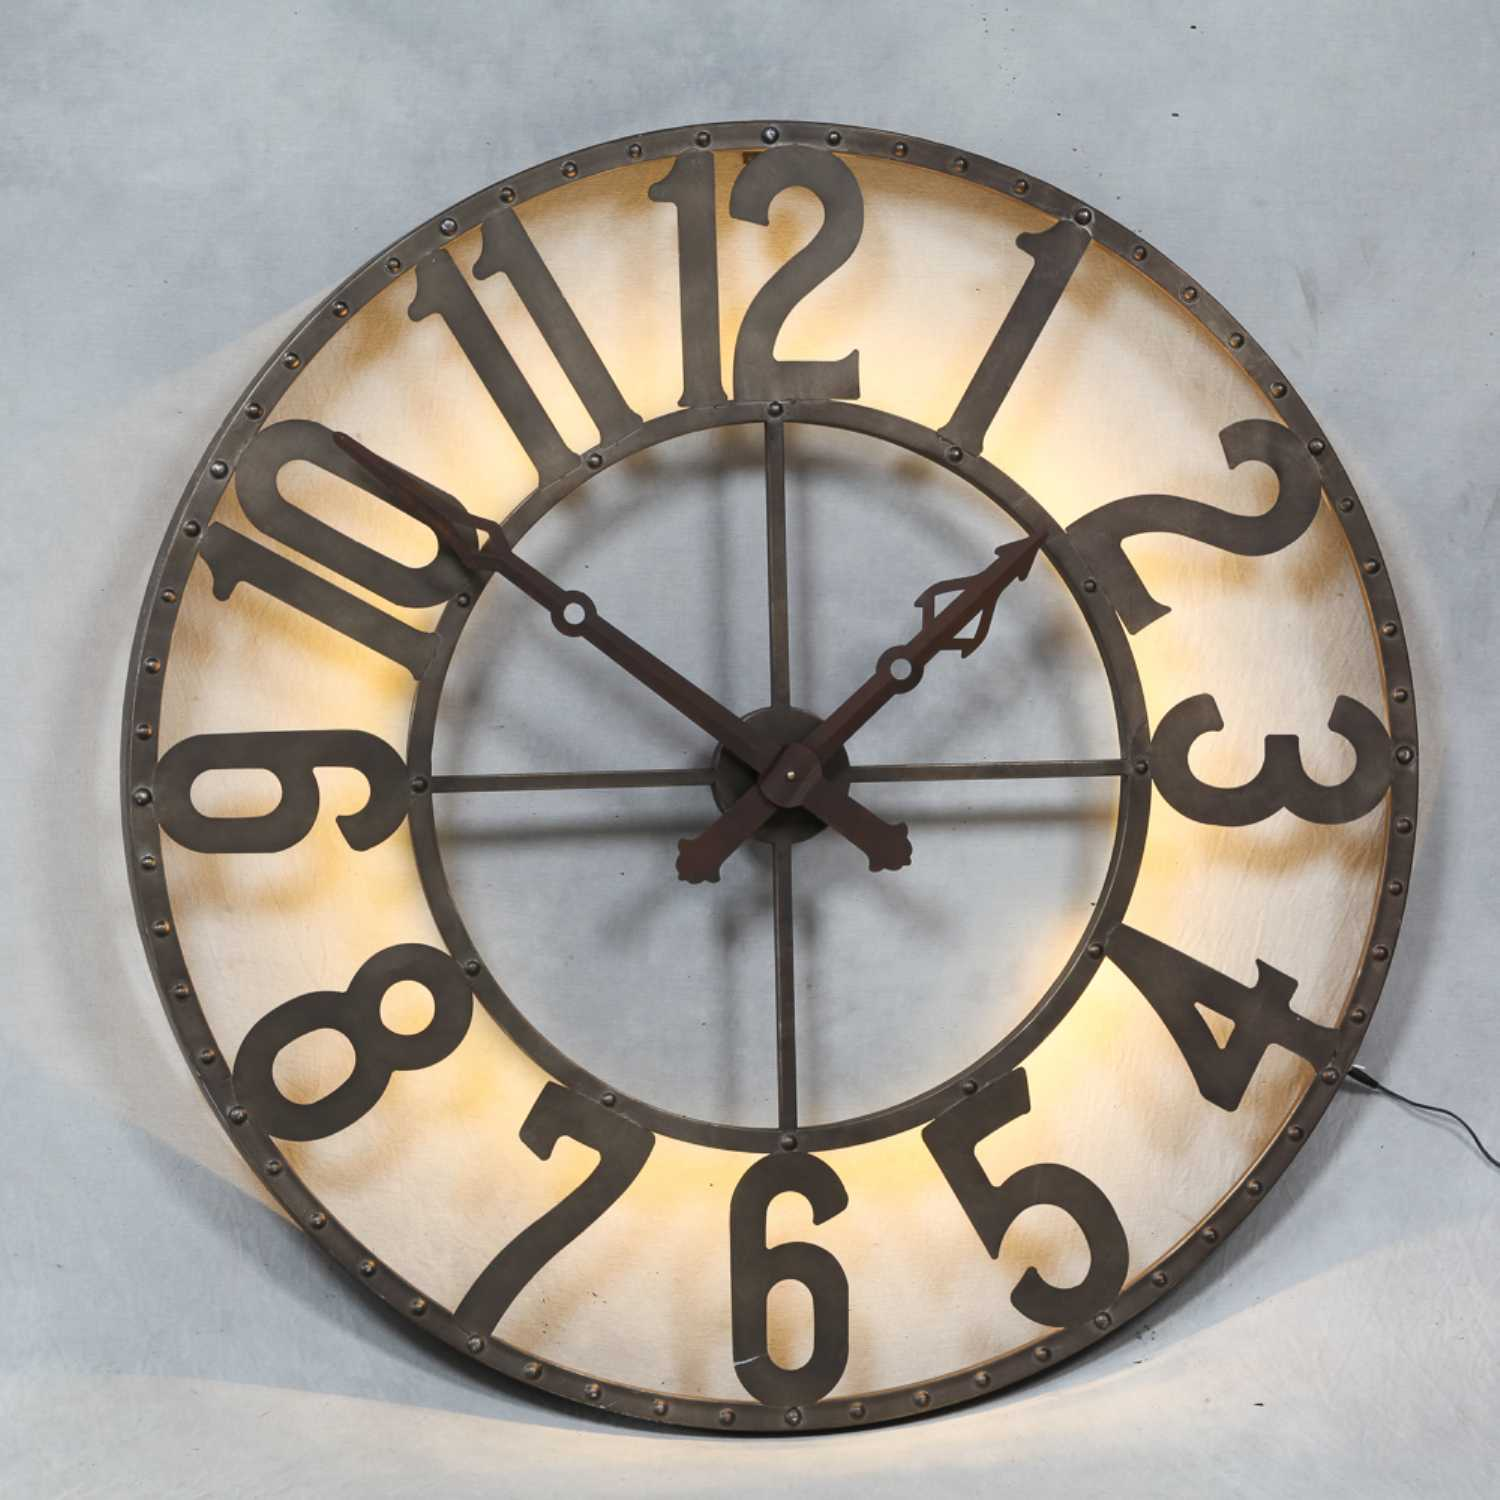 IN STOCK FREE DELIVERY London Large Round Steampunk Industrial Iluminated  Back Lit Wall Clock